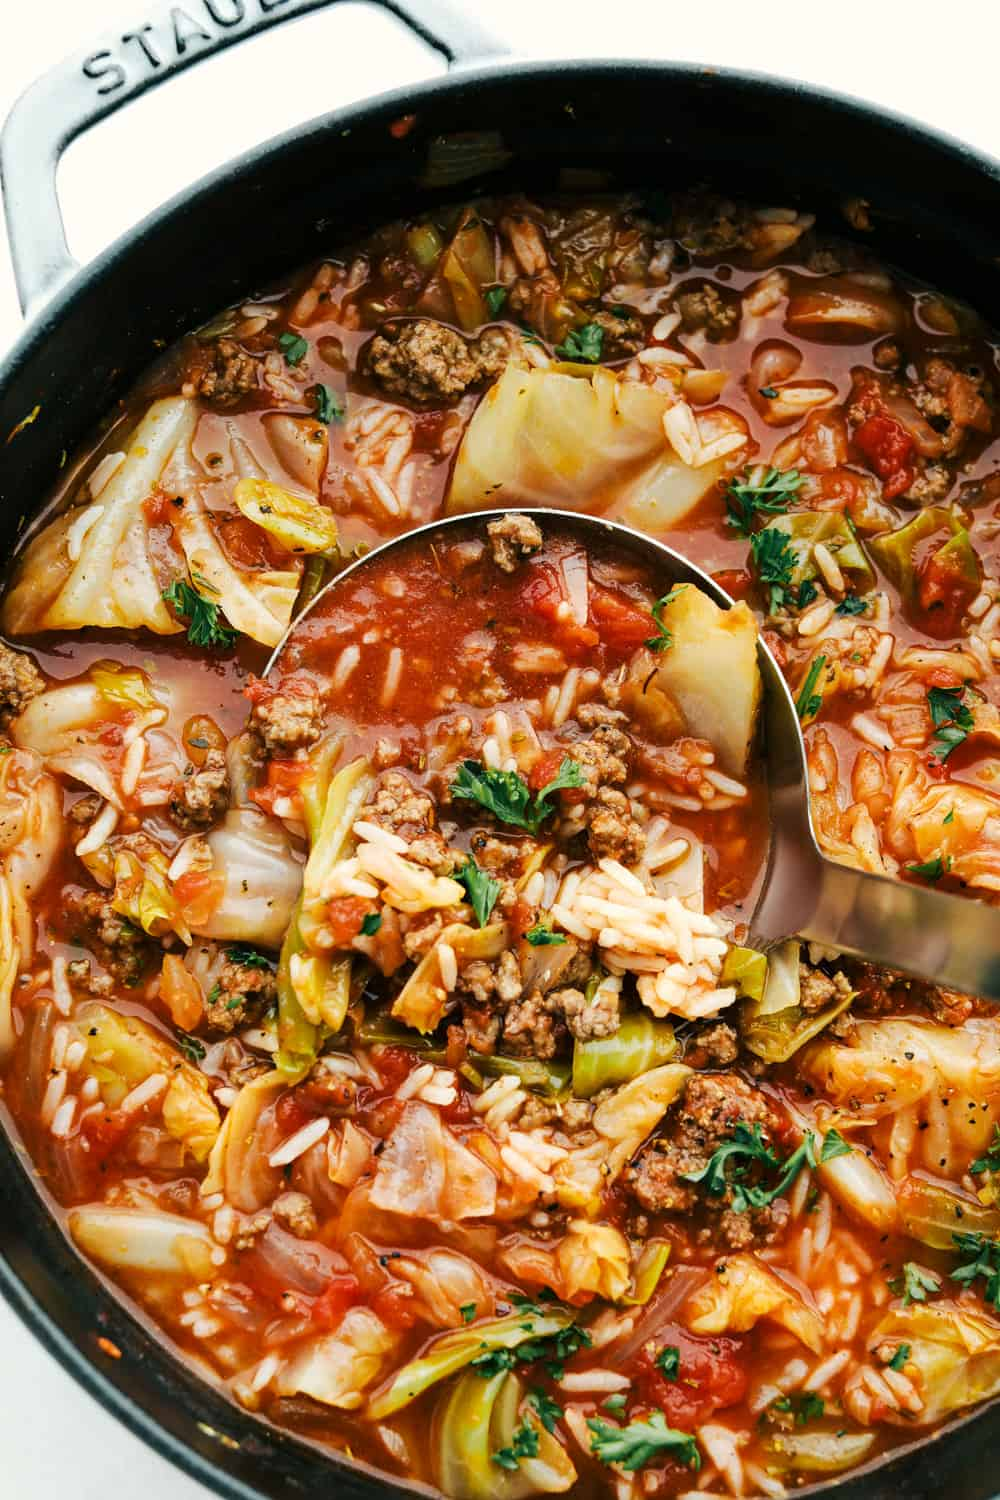 Hearty Stuffed Cabbage Soup full of veggies, hamburger and rice.